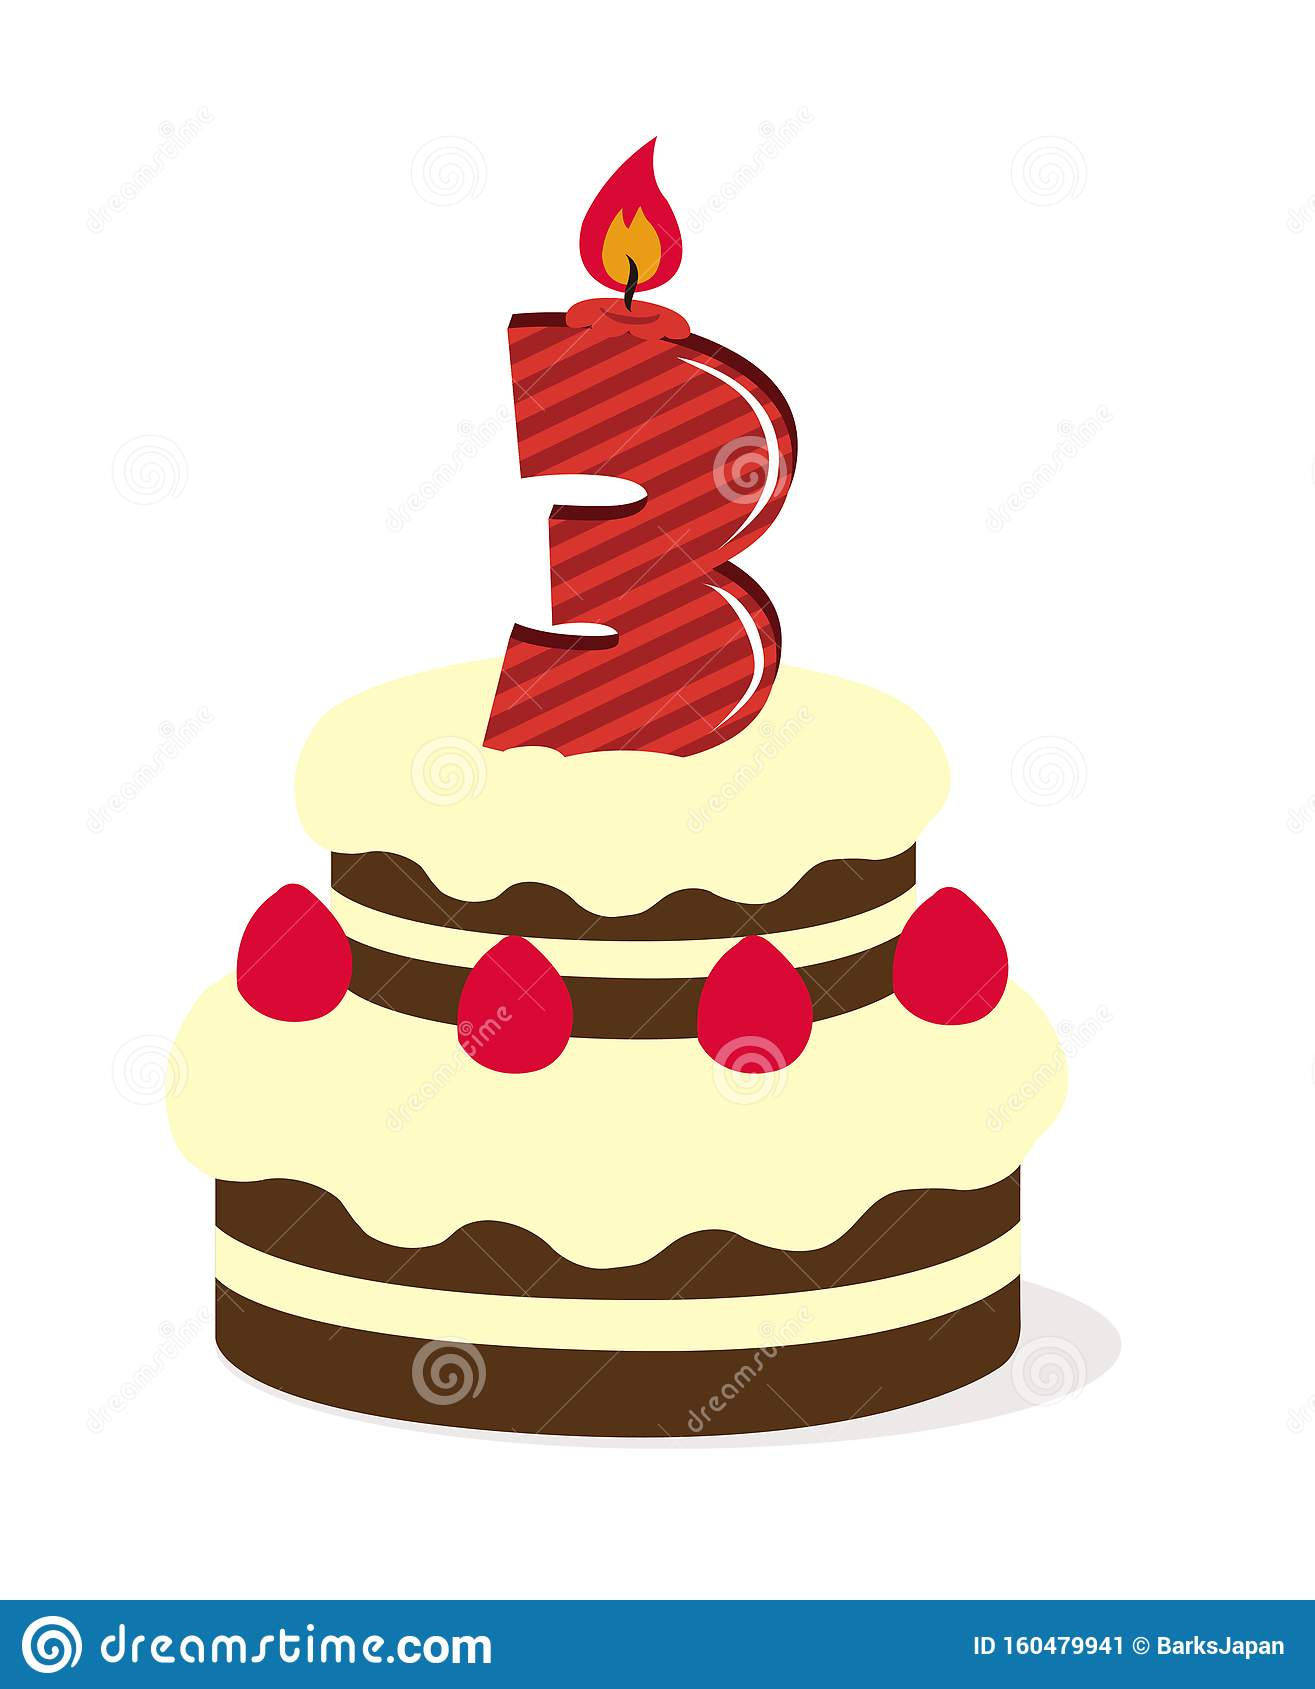 Birthday Cake Illustration 3 Years Old Stock Vector Illustration Of Colorful Sweet 160479941